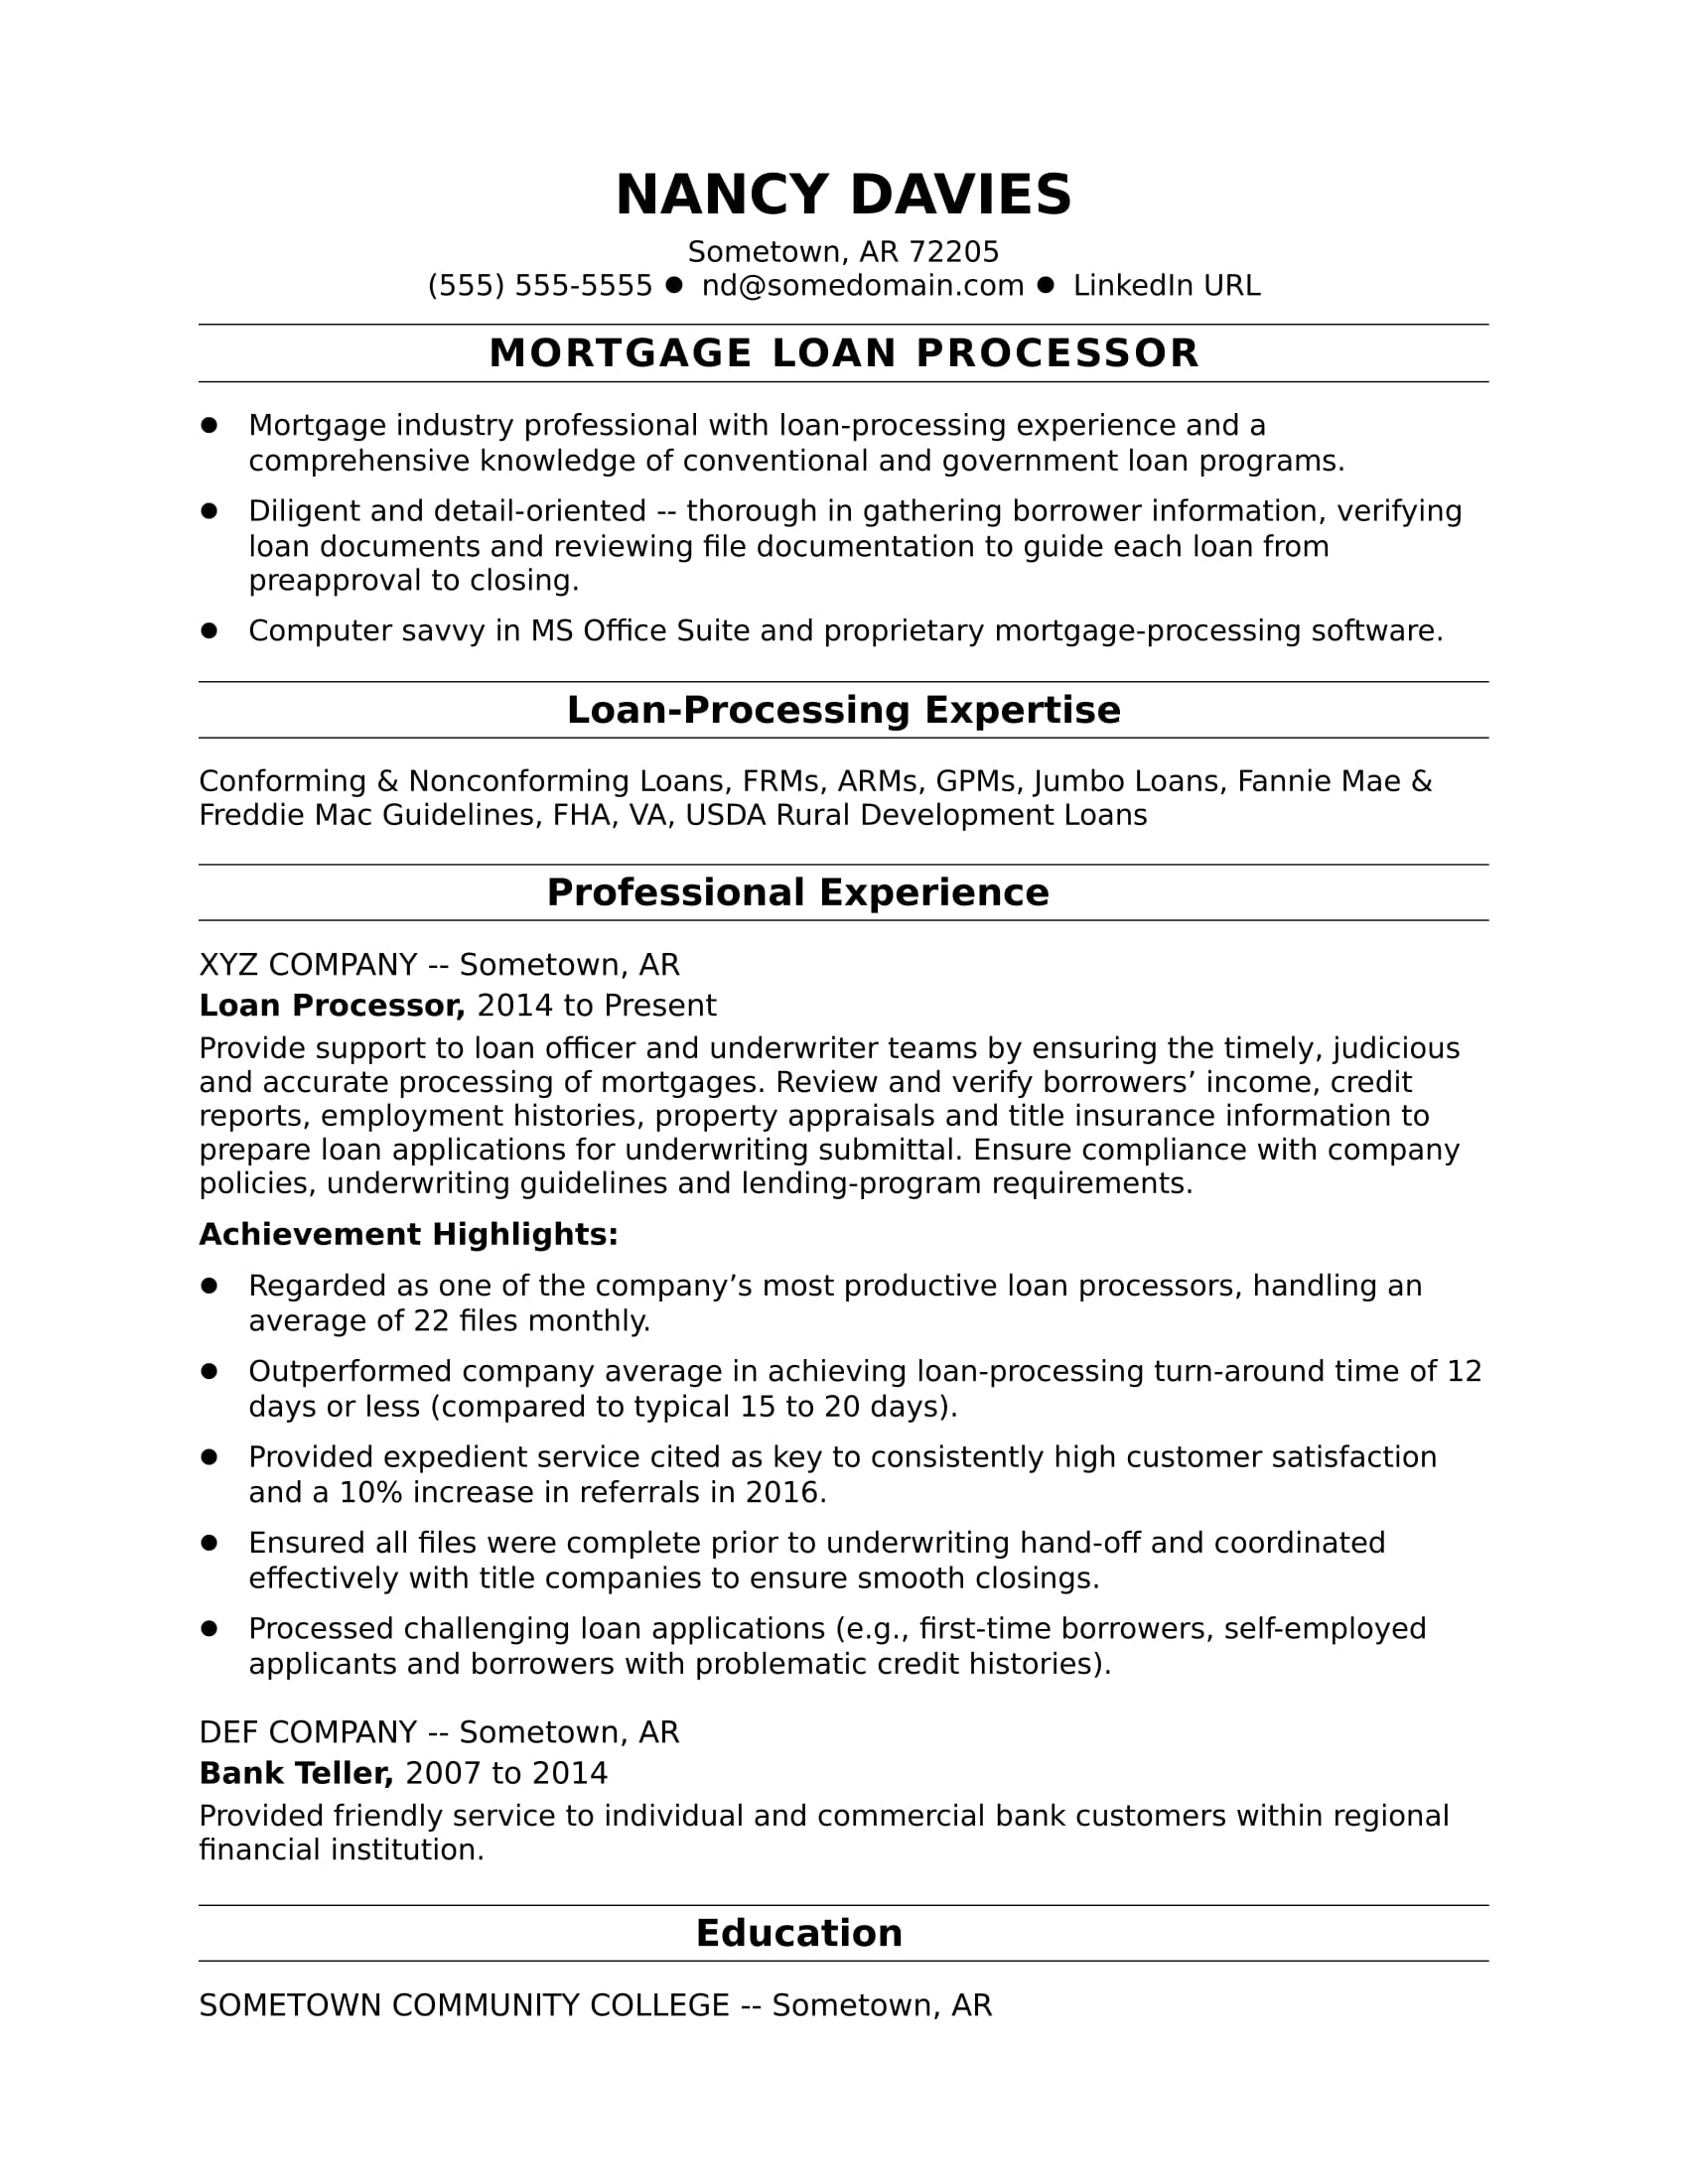 Mortgage loan processor resume sample for Loan processing checklist template